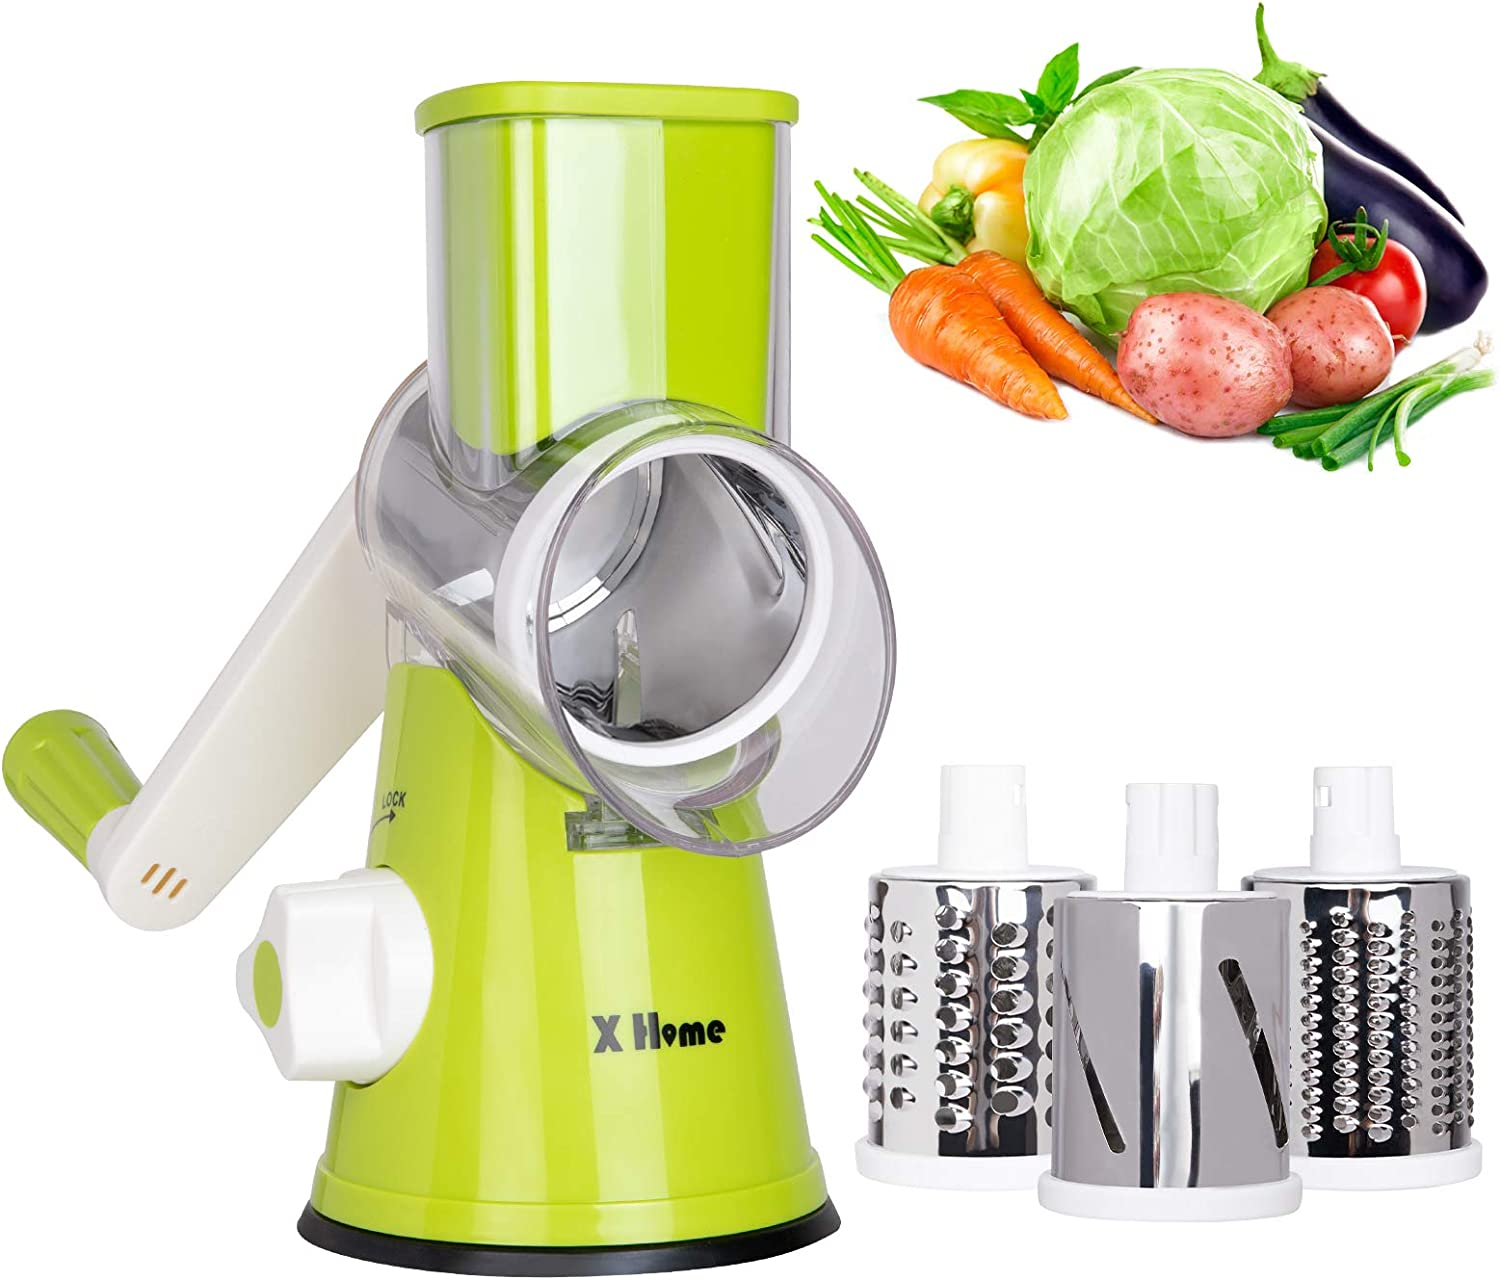 X Home Rotary Cheese Grater Shredder - 3 Drum Blades Manual Vegetable Slicer Nut Grinder with Strong Suction Base, Easy to Clean (Green)